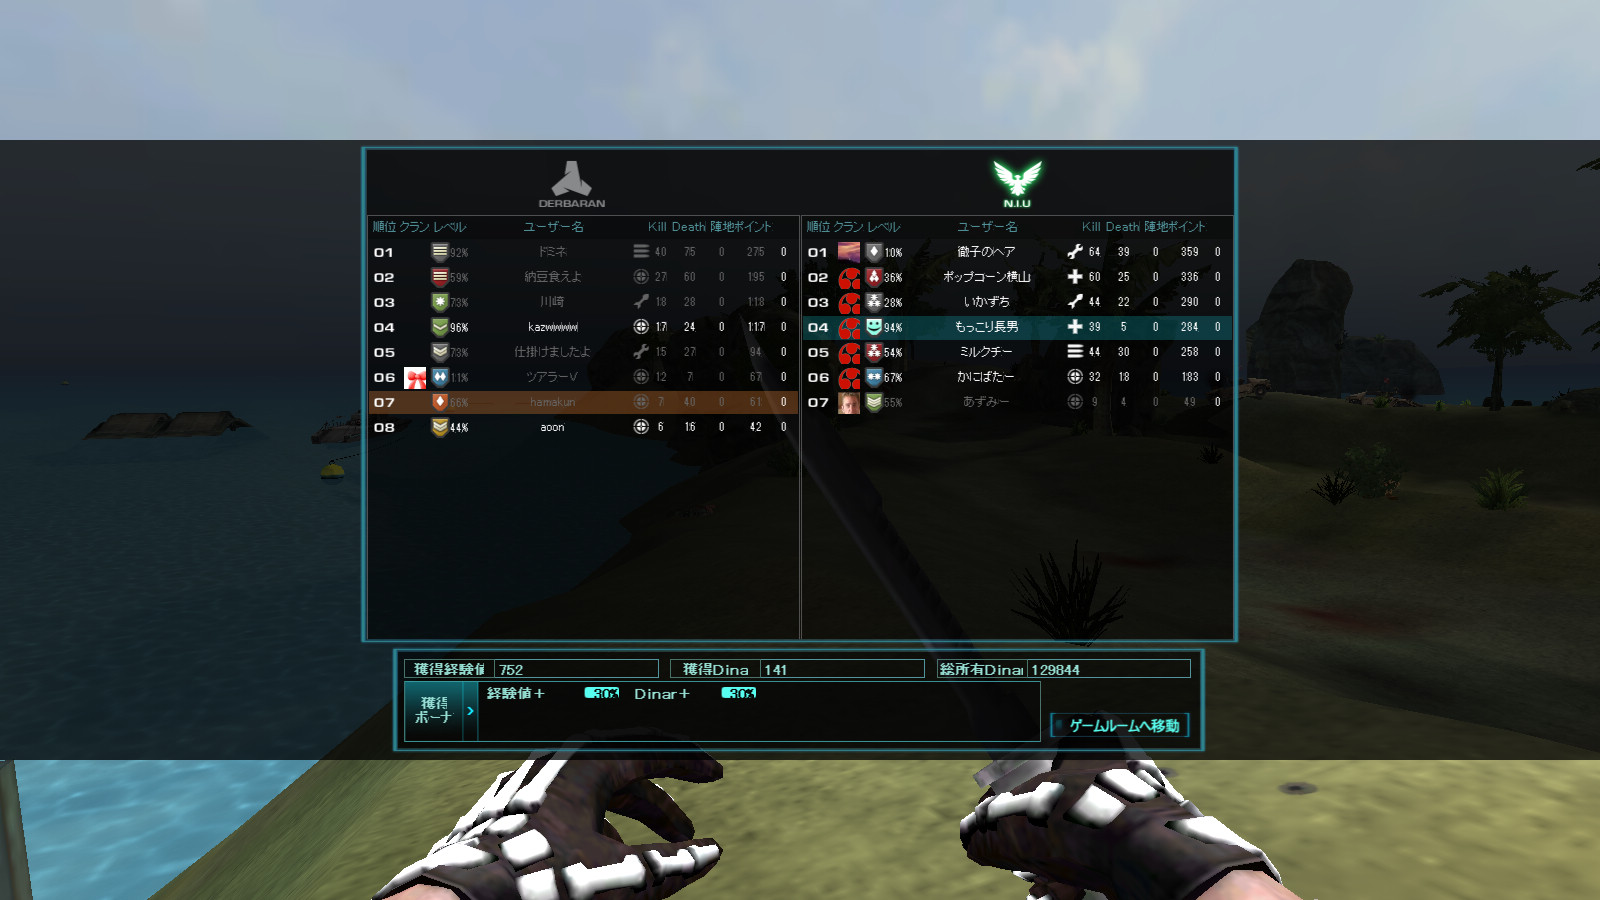 screenshot_381.jpg